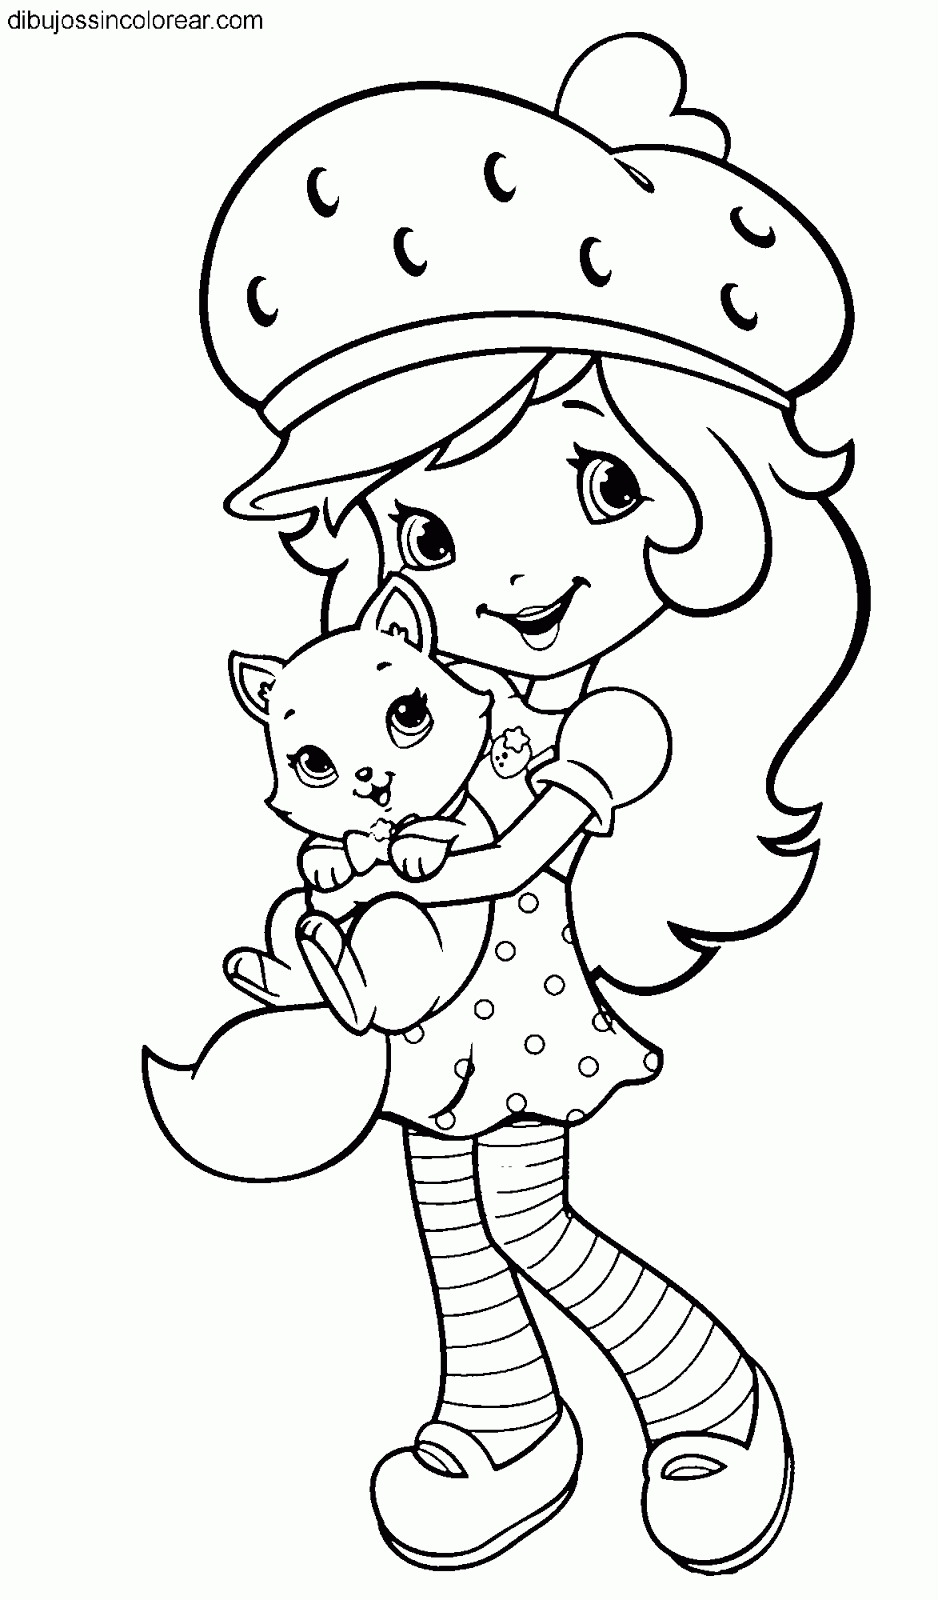 my little pony equestria girls coloring pages - dibujos de tarta de fresa strawberry